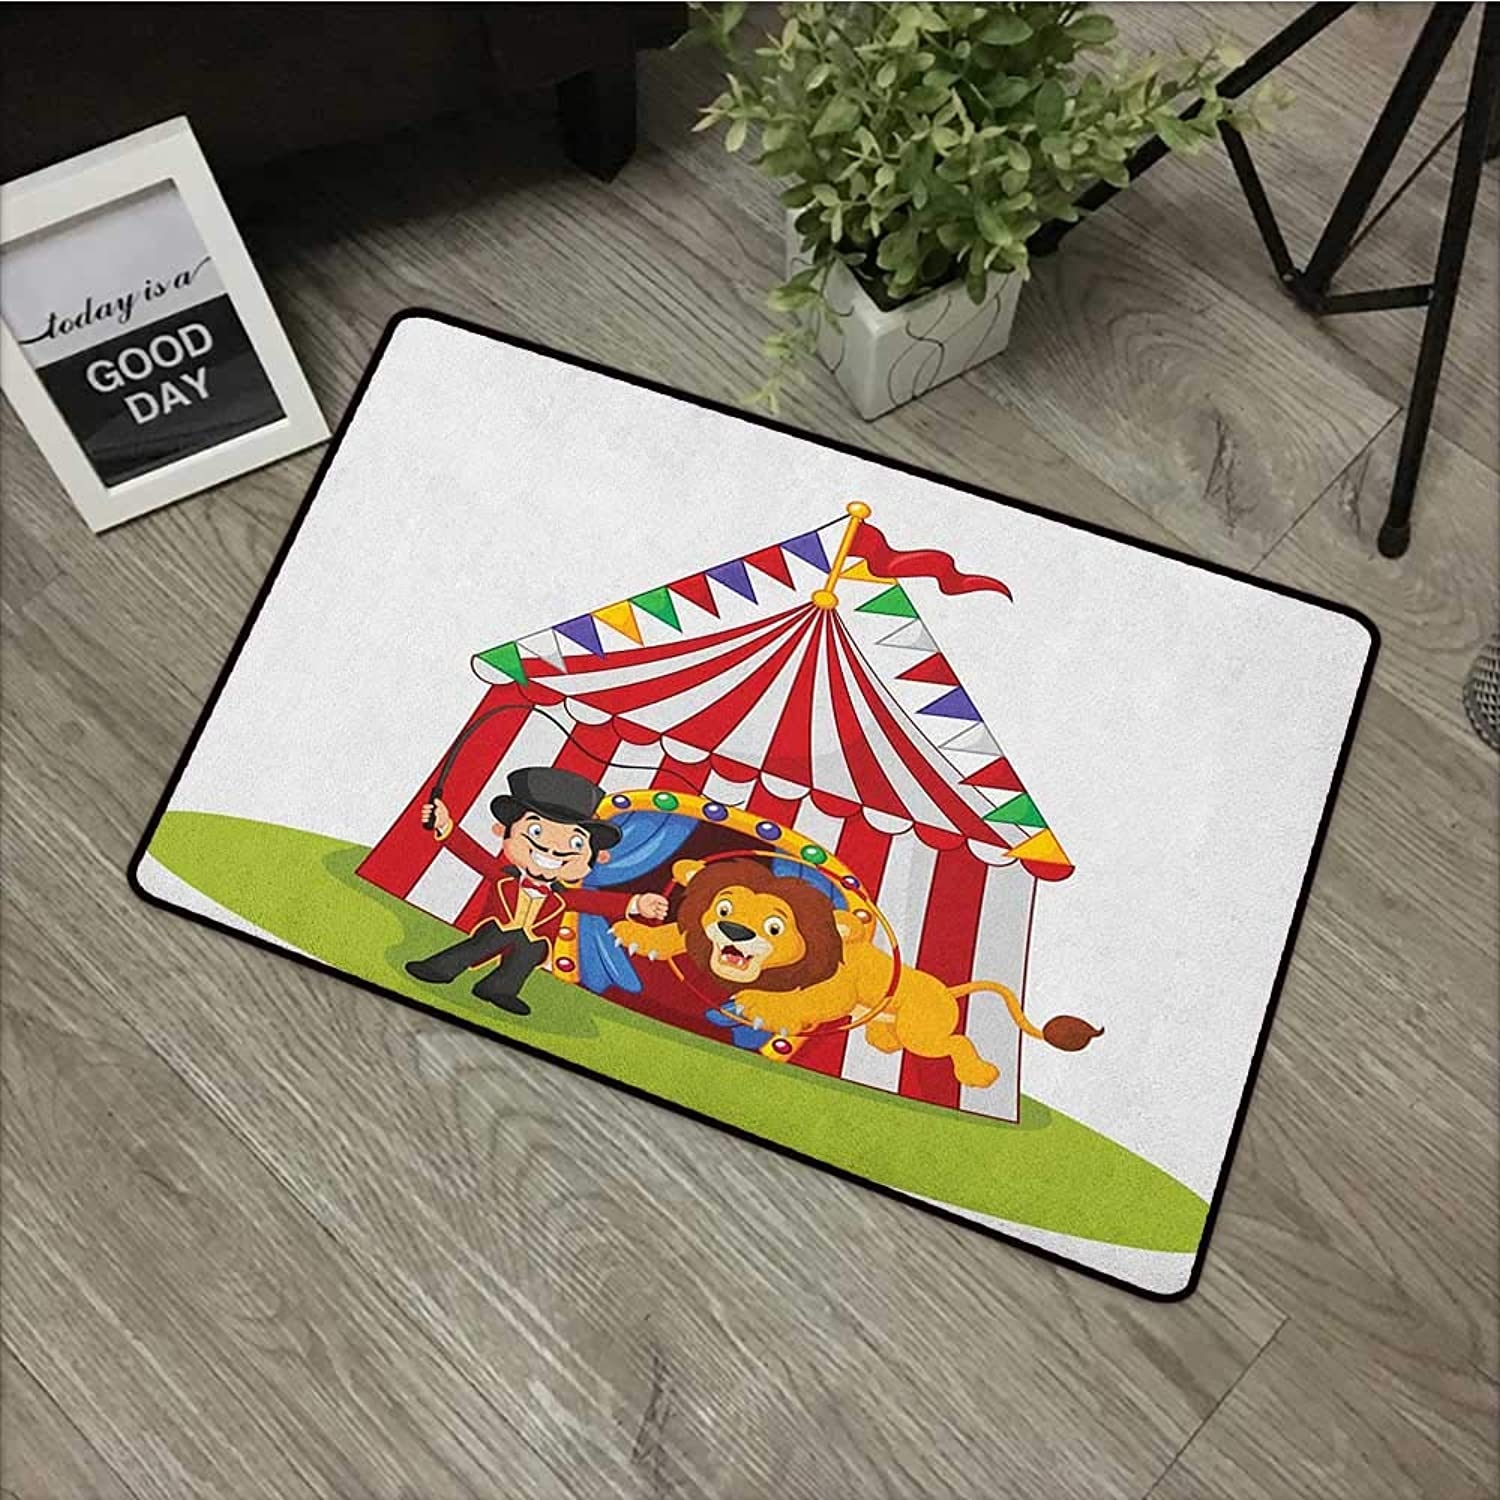 Meeting Room mat W35 x L59 INCH Circus,Cartoon Lion Jumping Through The Ring with Circus Tent Celebration Performance Show, Multicolor Non-Slip Door Mat Carpet